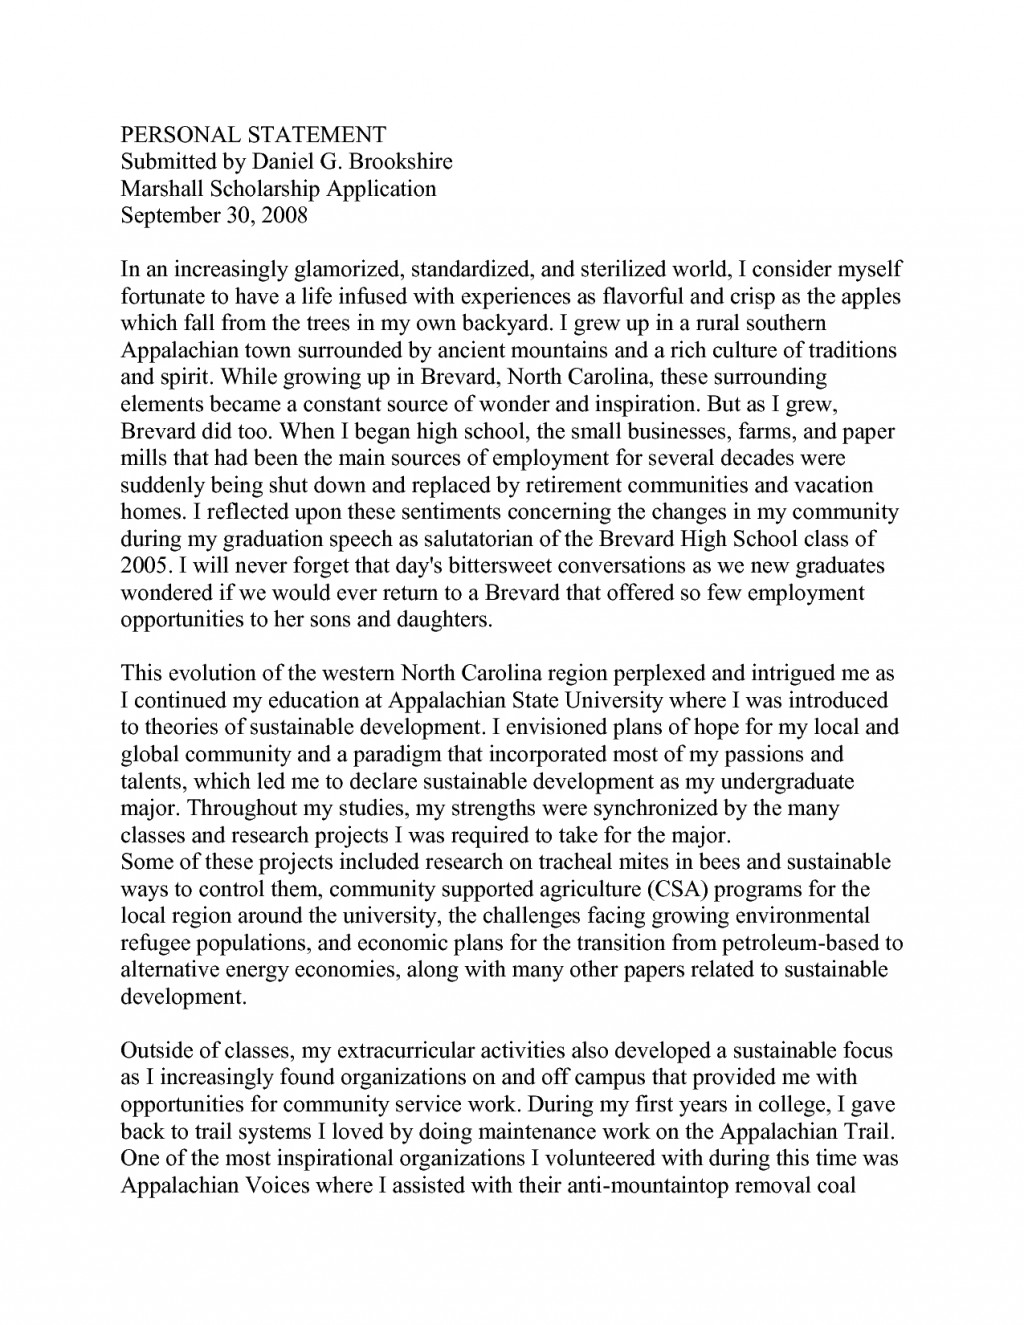 005 Essay Example What To Write In Personal Statement For Scholarship Examples Of Essays Top Scholarships Sample Chevening Pdf Large